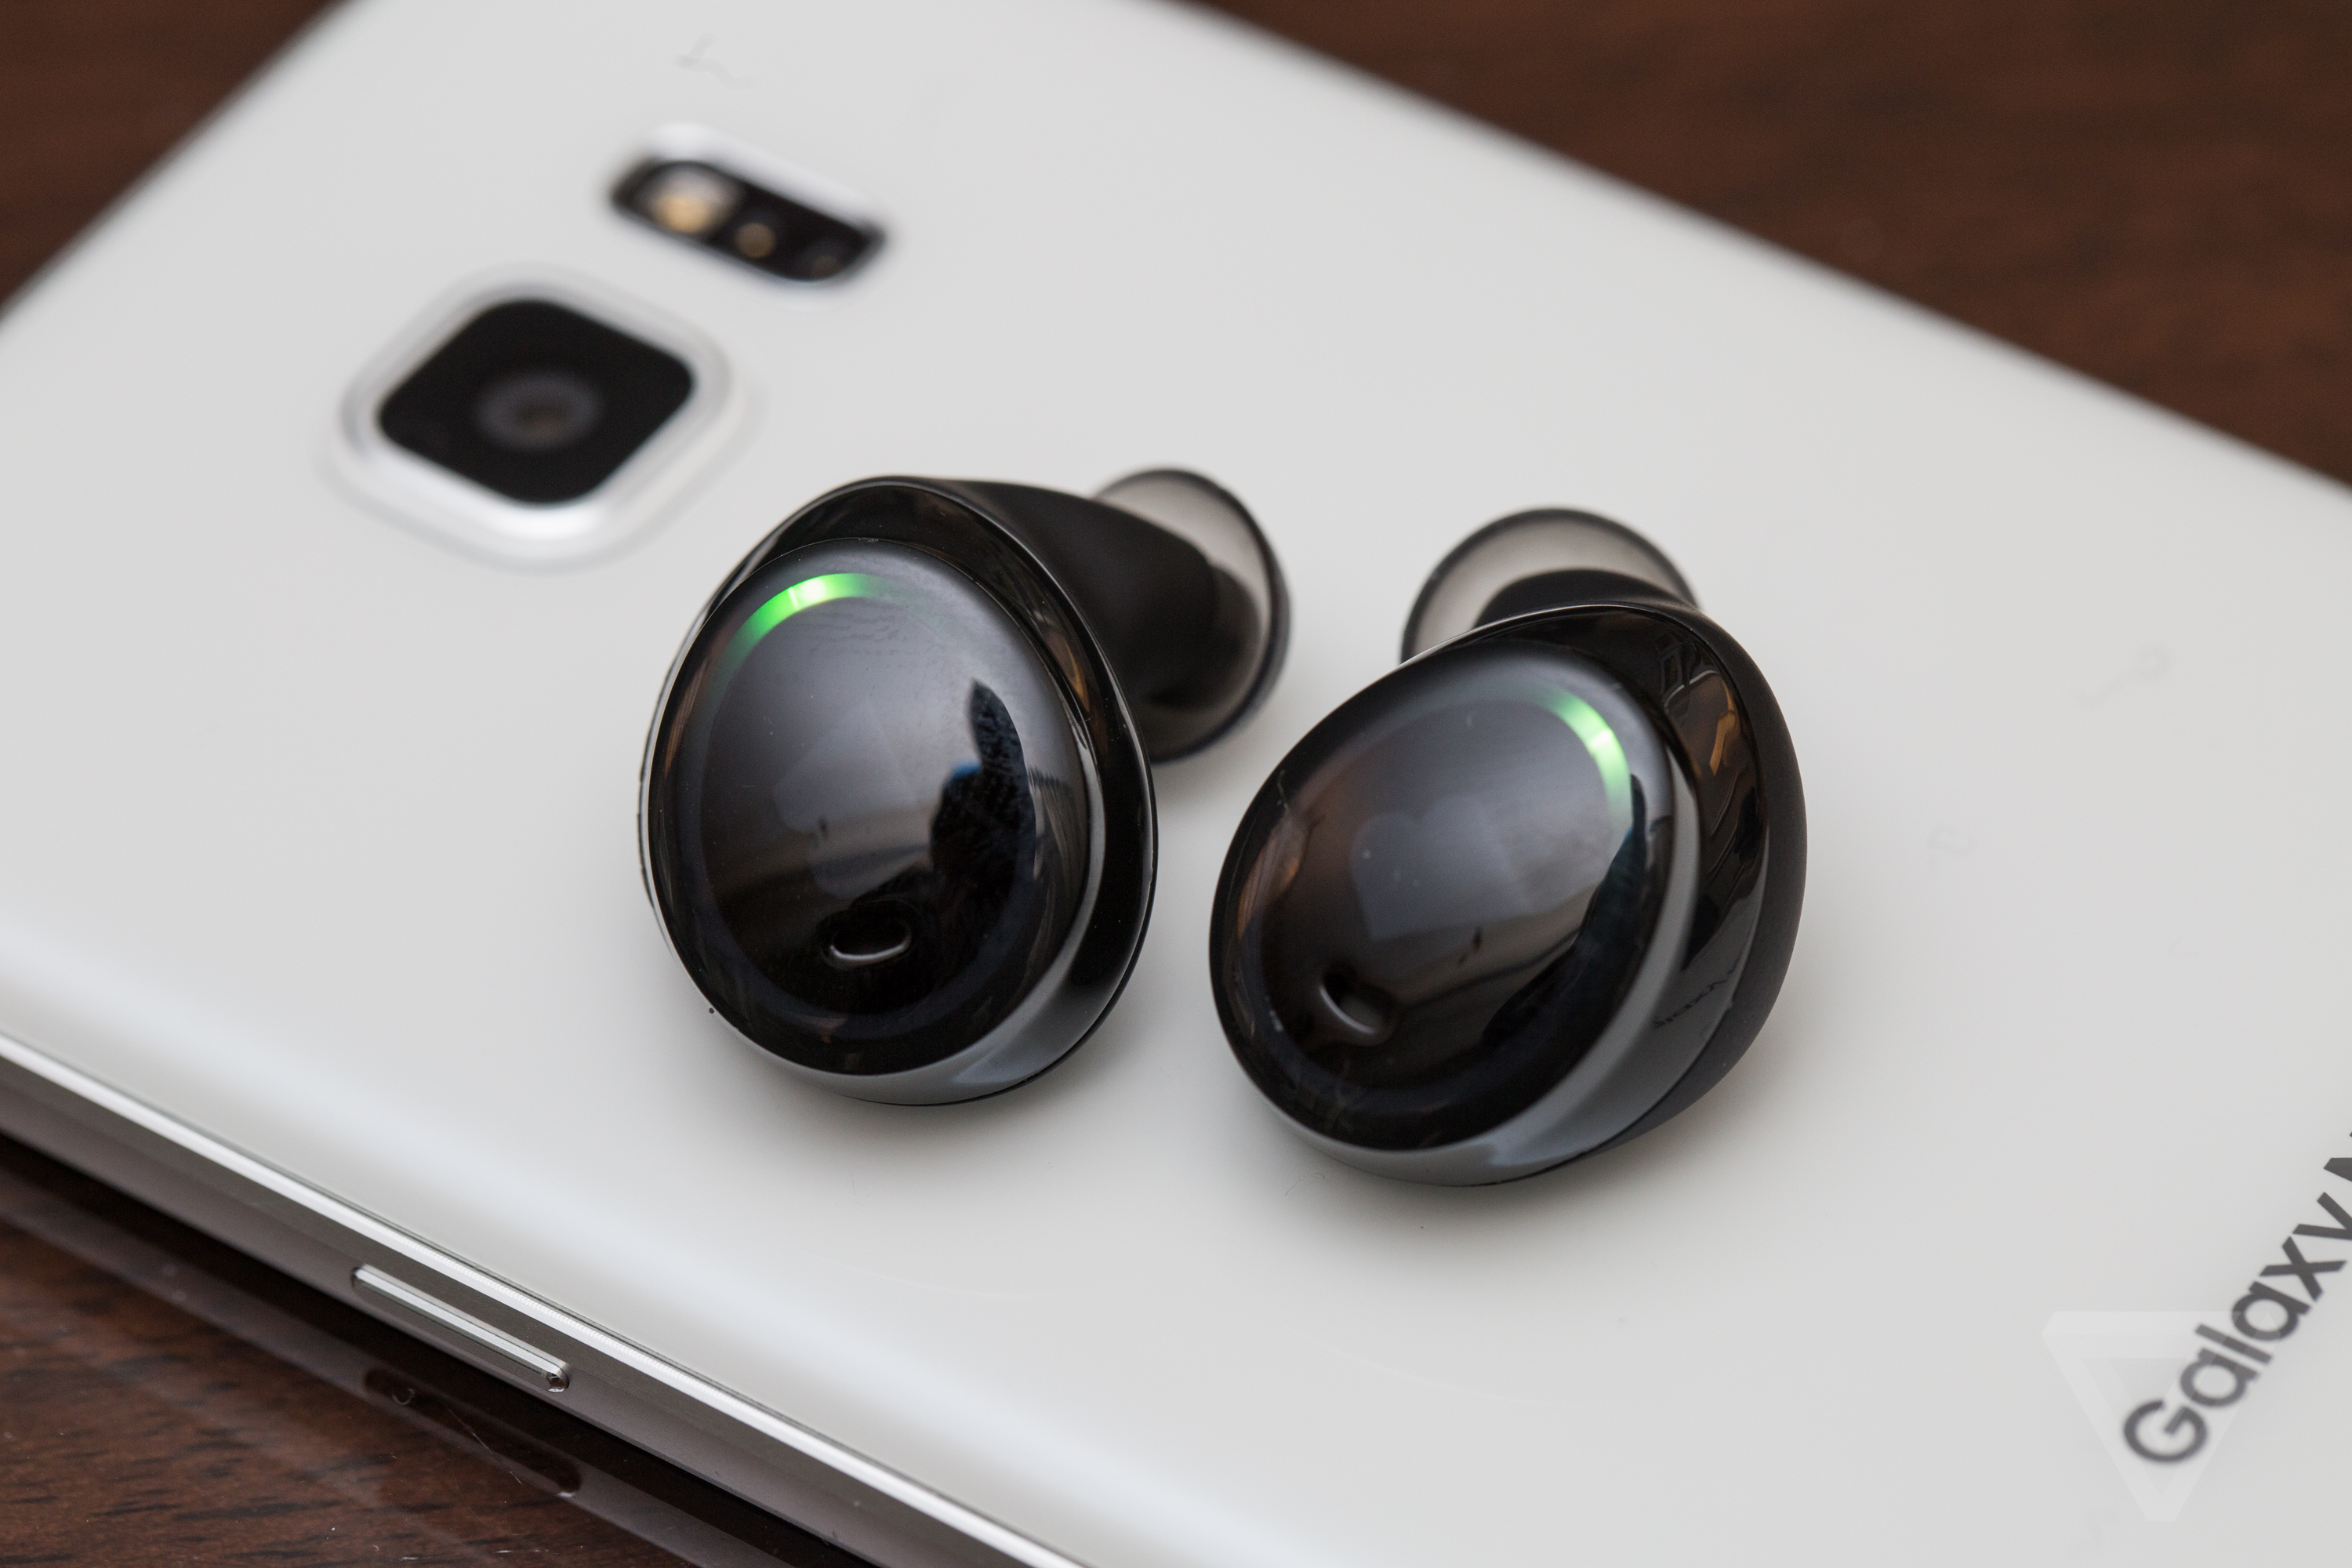 75a5fb91add Bragi The Dash Truly Wireless Smart Headphones Review - Image ...